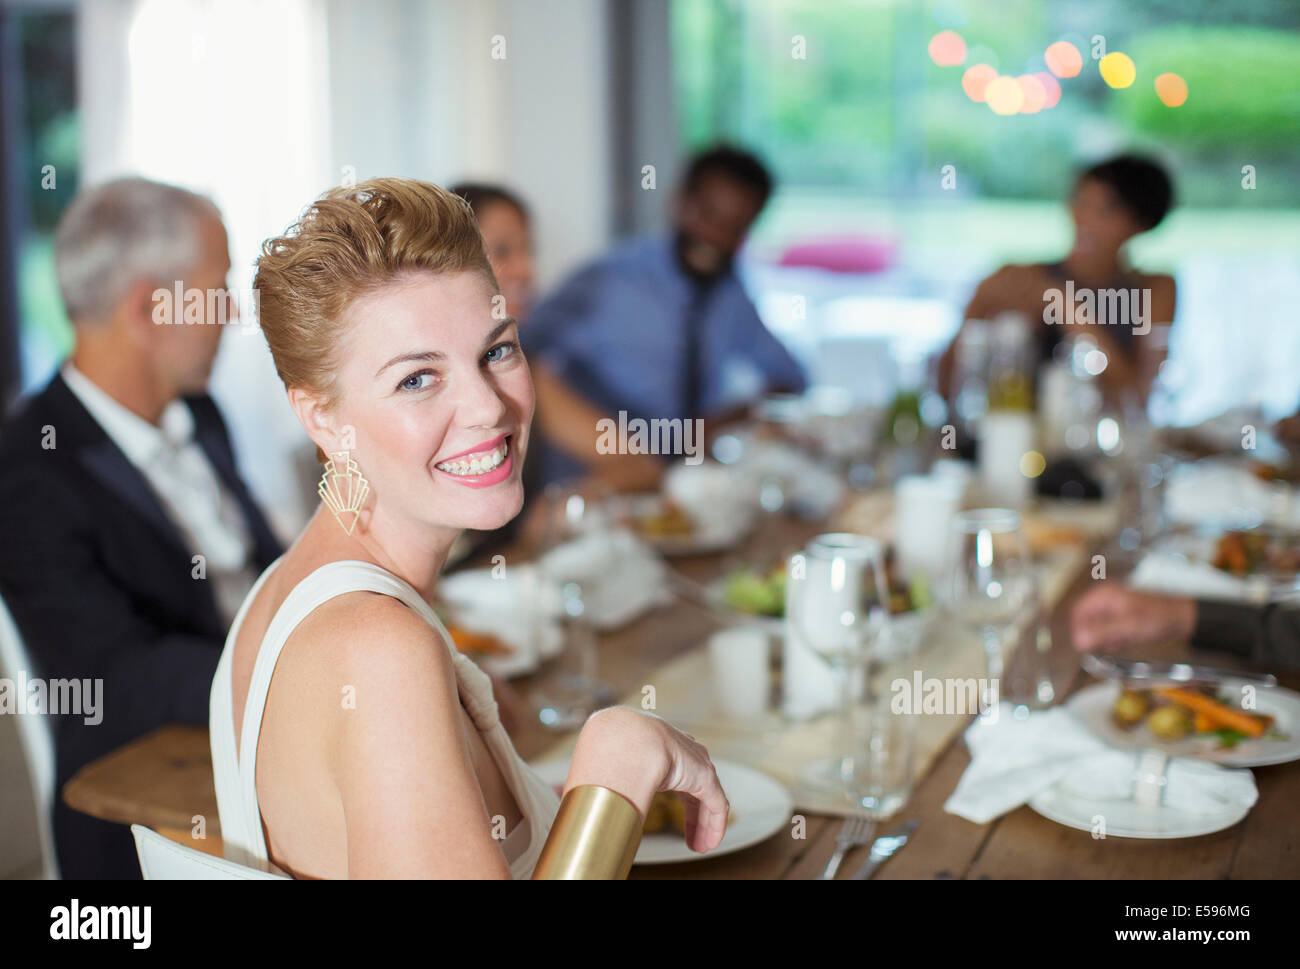 Woman smiling at dinner party - Stock Image